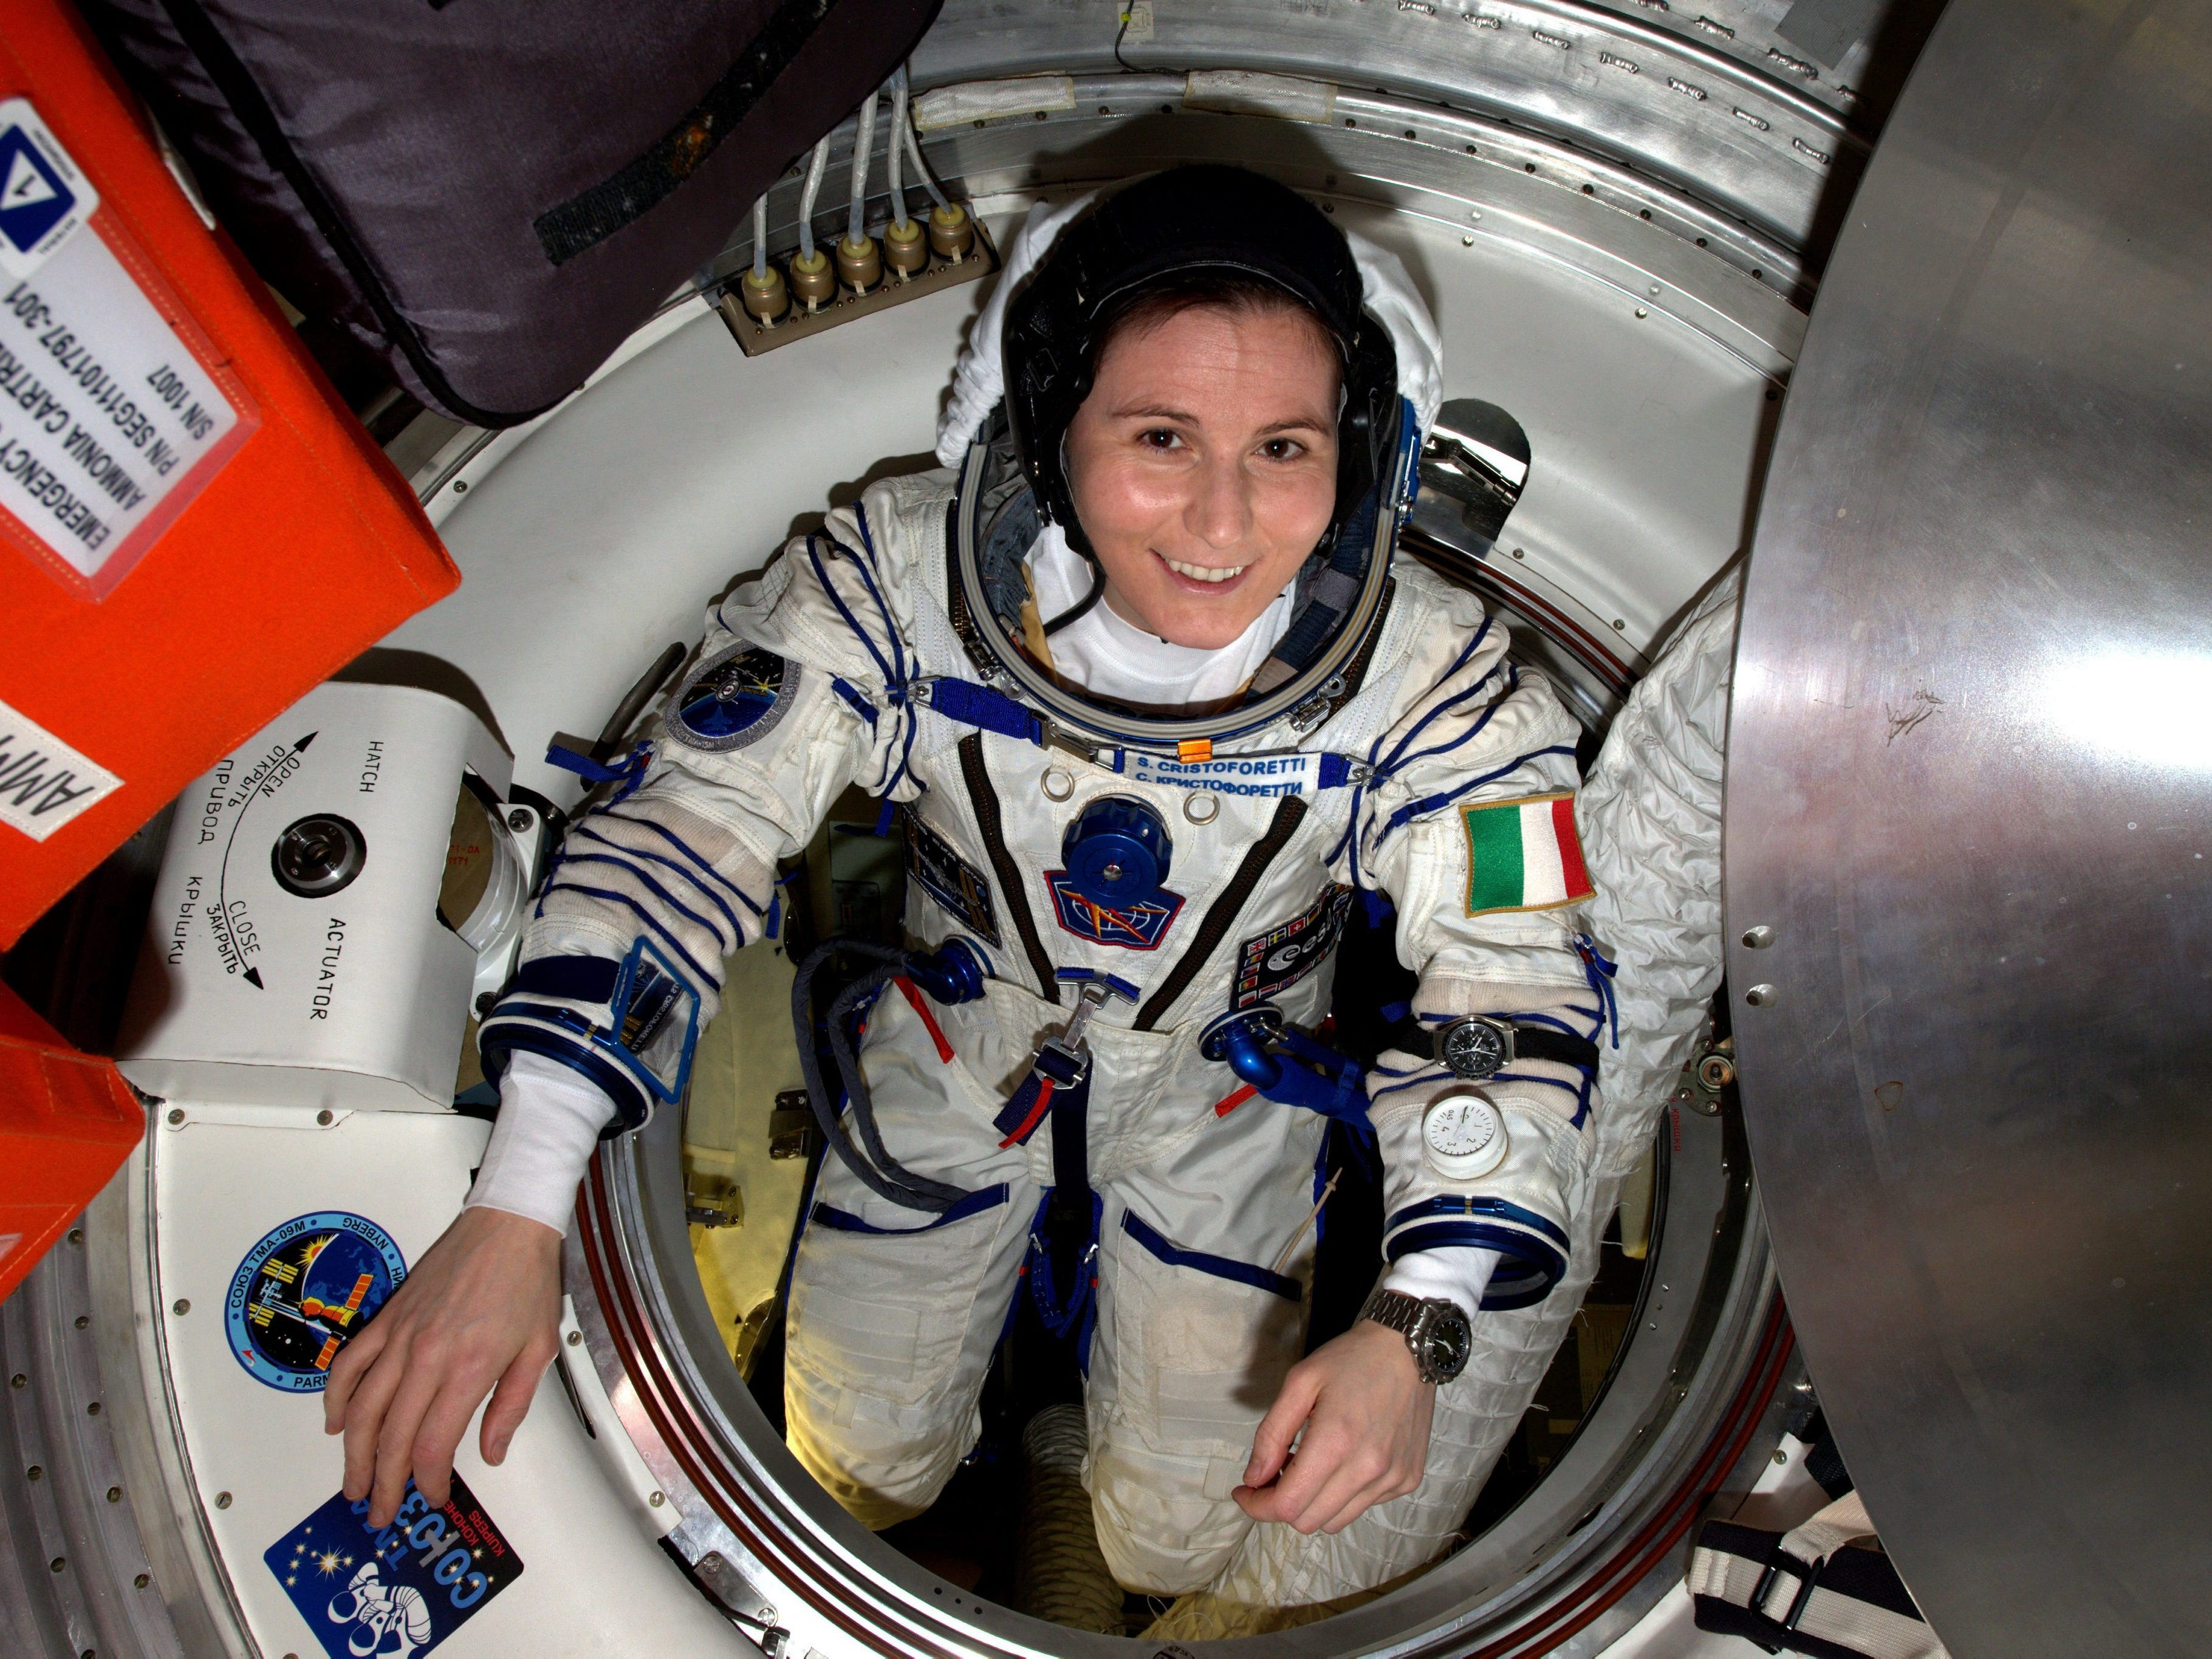 On March 29, 2019,  astronauts Anne McClain and Christina Koch will exit the International Space Station and work outside the spacecraft in the first all female spacewalk.  In this photo,  Space Agency astronaut Samantha Cristoforetti, of Italy, checks her pressure suit in preparation for her crews departure from the International Space Station after 6 1/2 months in space. Since June, 6,  2015, Cristoforetti holds the record for the longest single spaceflight for a woman, a record previously held by NASA astronaut Sunita Williams with 195 days after Expedition 33. Cristoforetti also holds the record for the longest uninterrupted spaceflight of an ESA astronaut, NASA said in its press release.